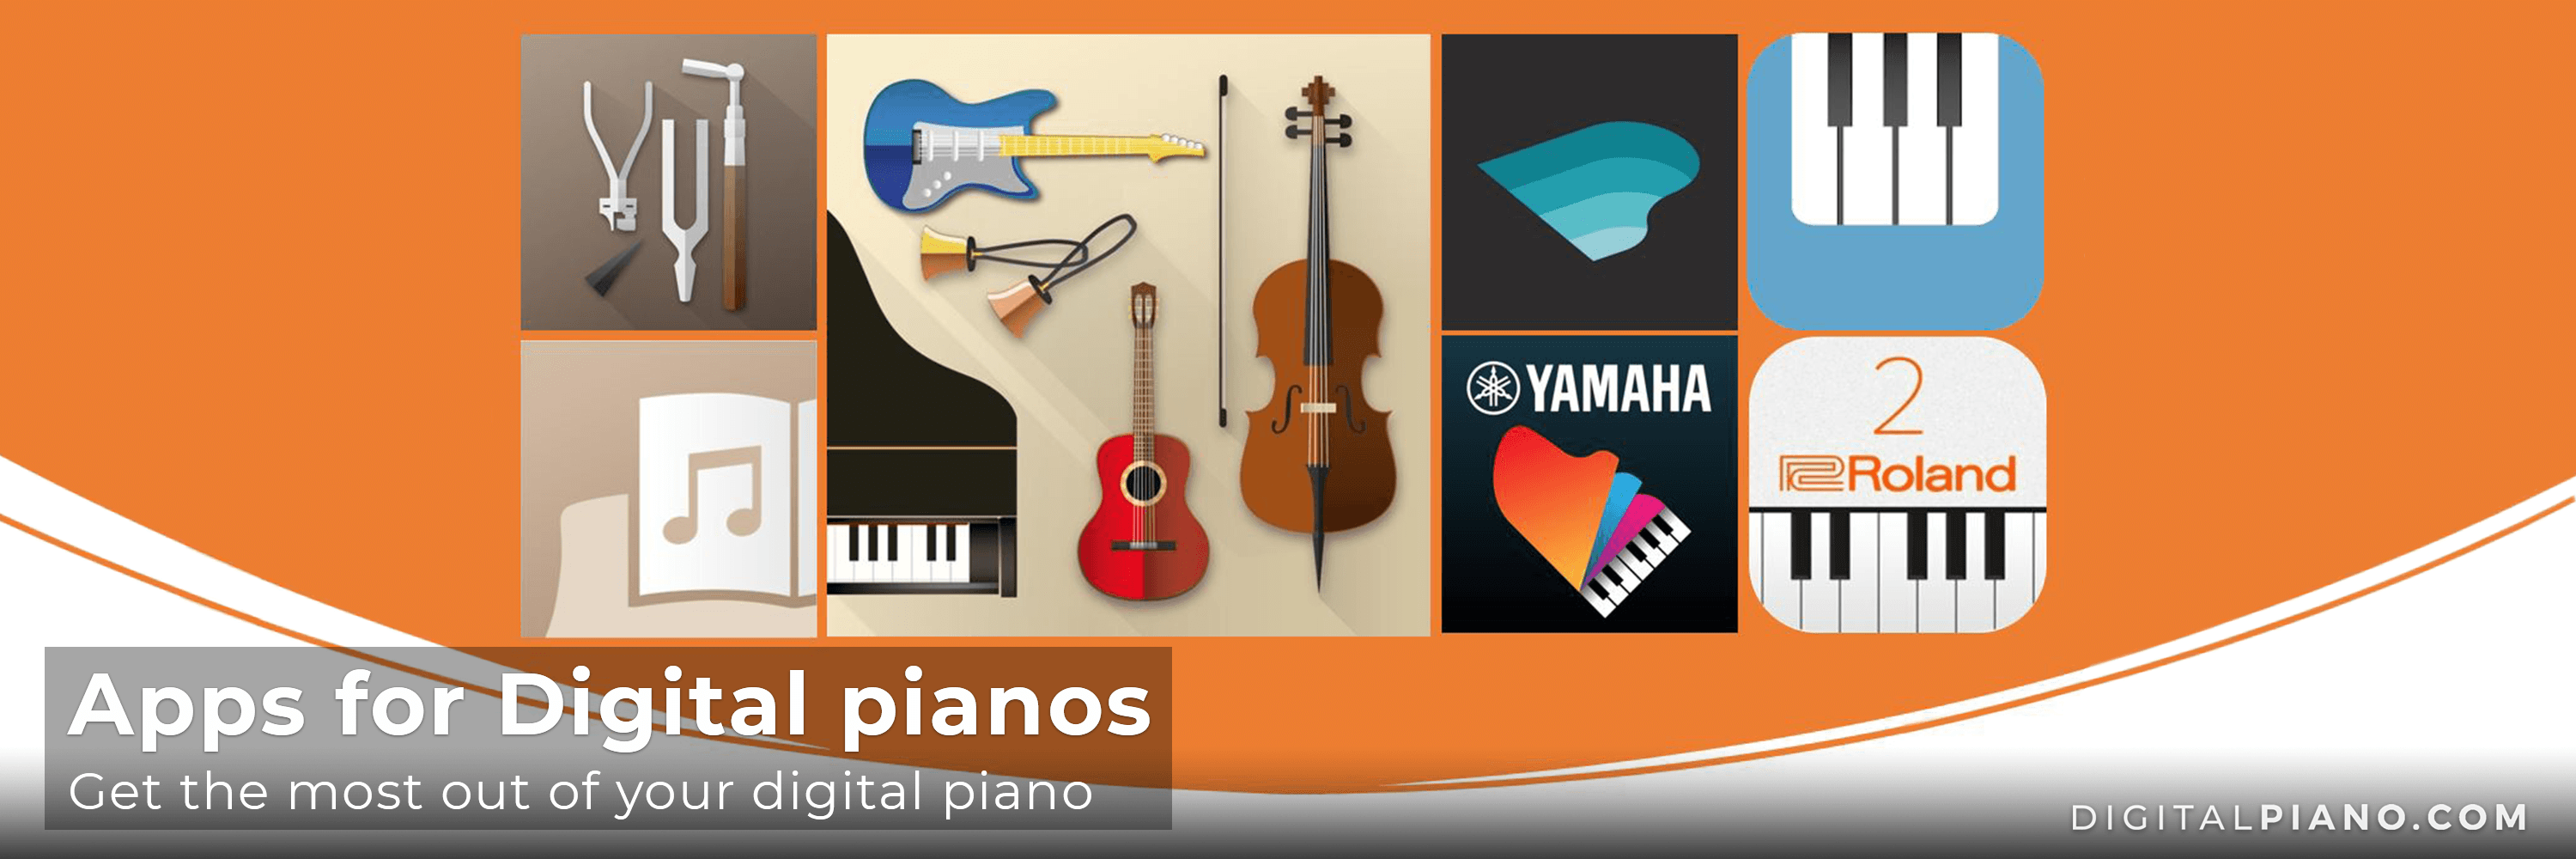 Apps for digital pianos